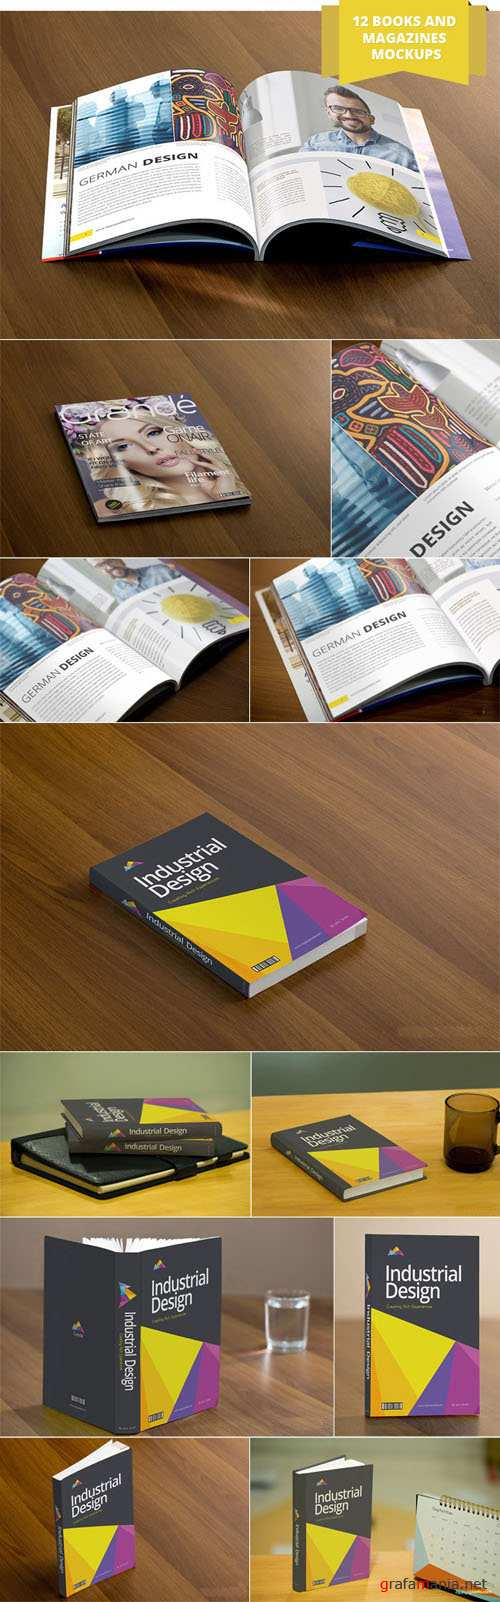 12 Books and Magazines Mockups - Zippypixels